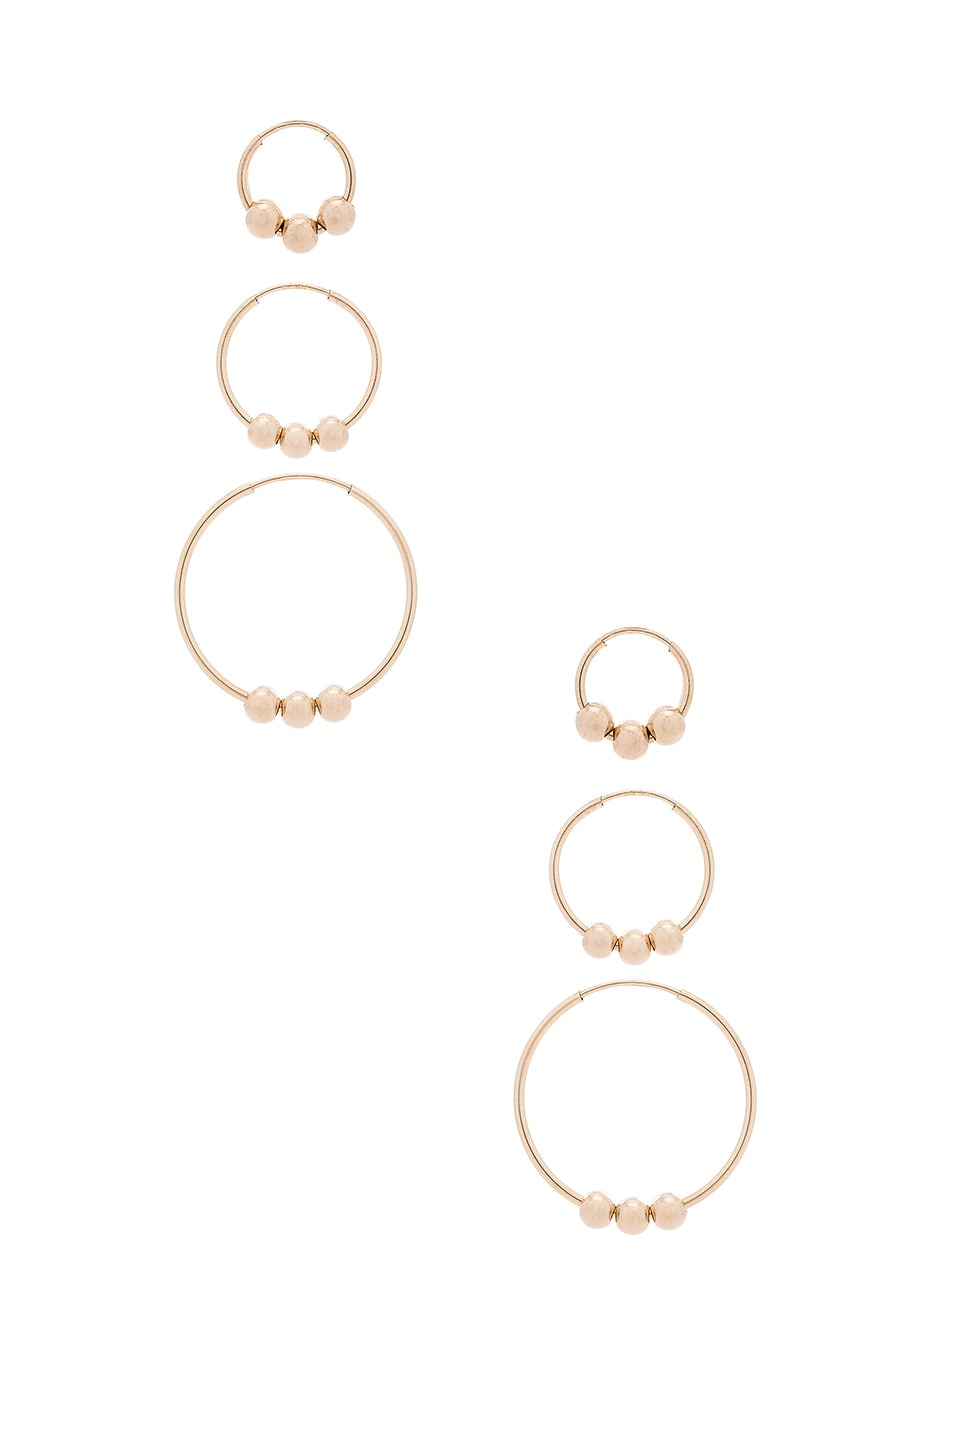 Triple Ball Earring Set